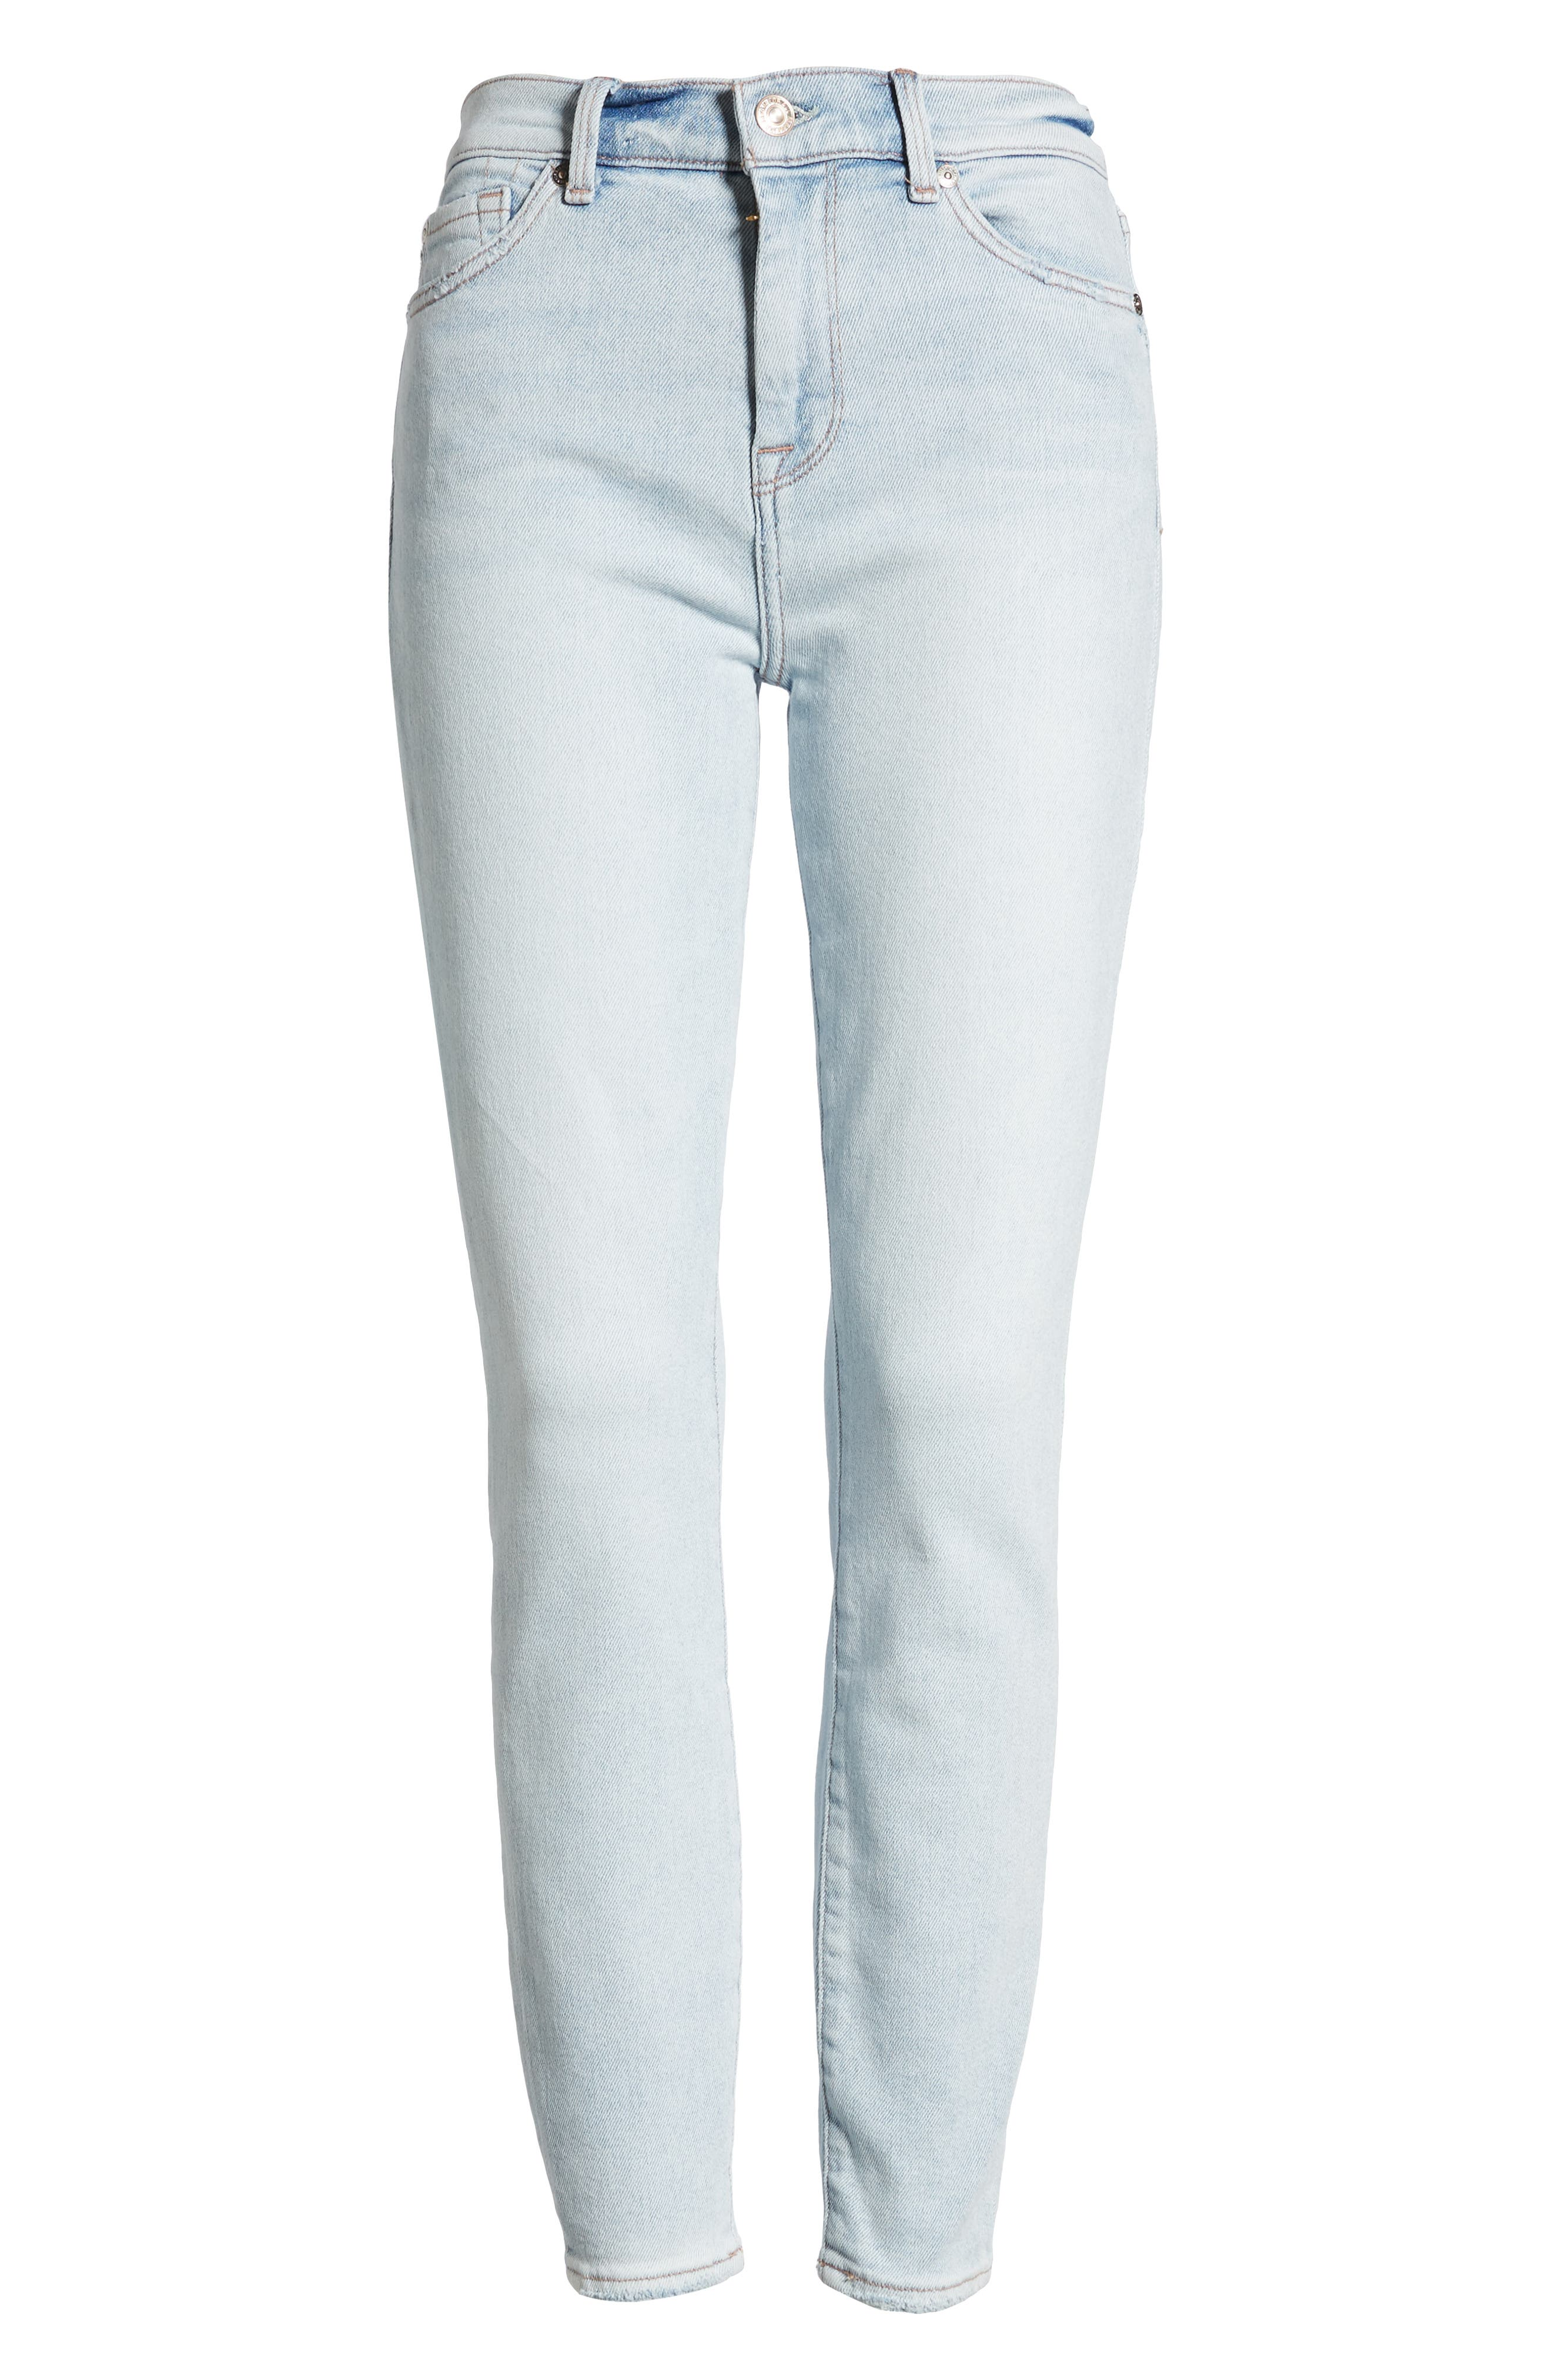 7 FOR ALL MANKIND<SUP>®</SUP>, Luxe Vintage High Waist Ankle Skinny Jeans, Alternate thumbnail 7, color, LUXE VINTAGE CLOUD